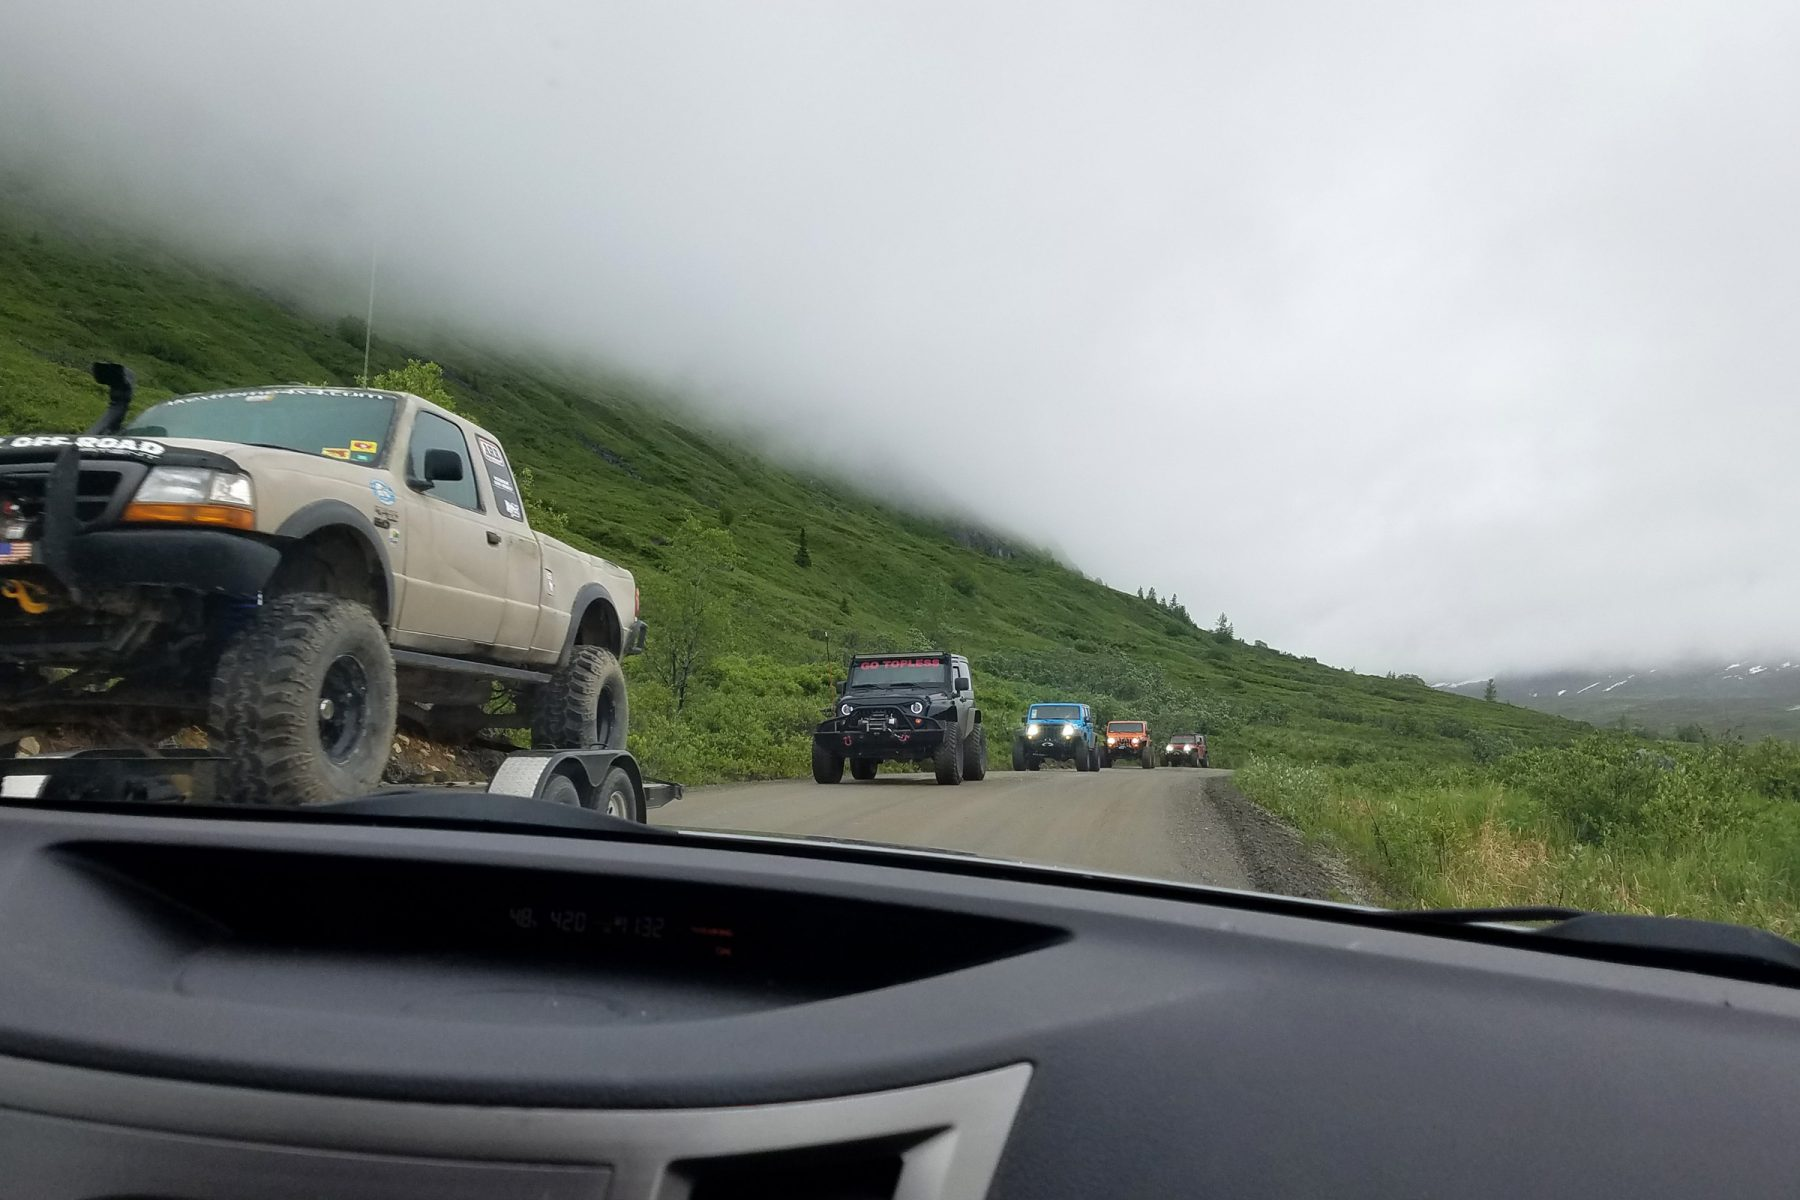 Jeep convoy at Hatcher Pass